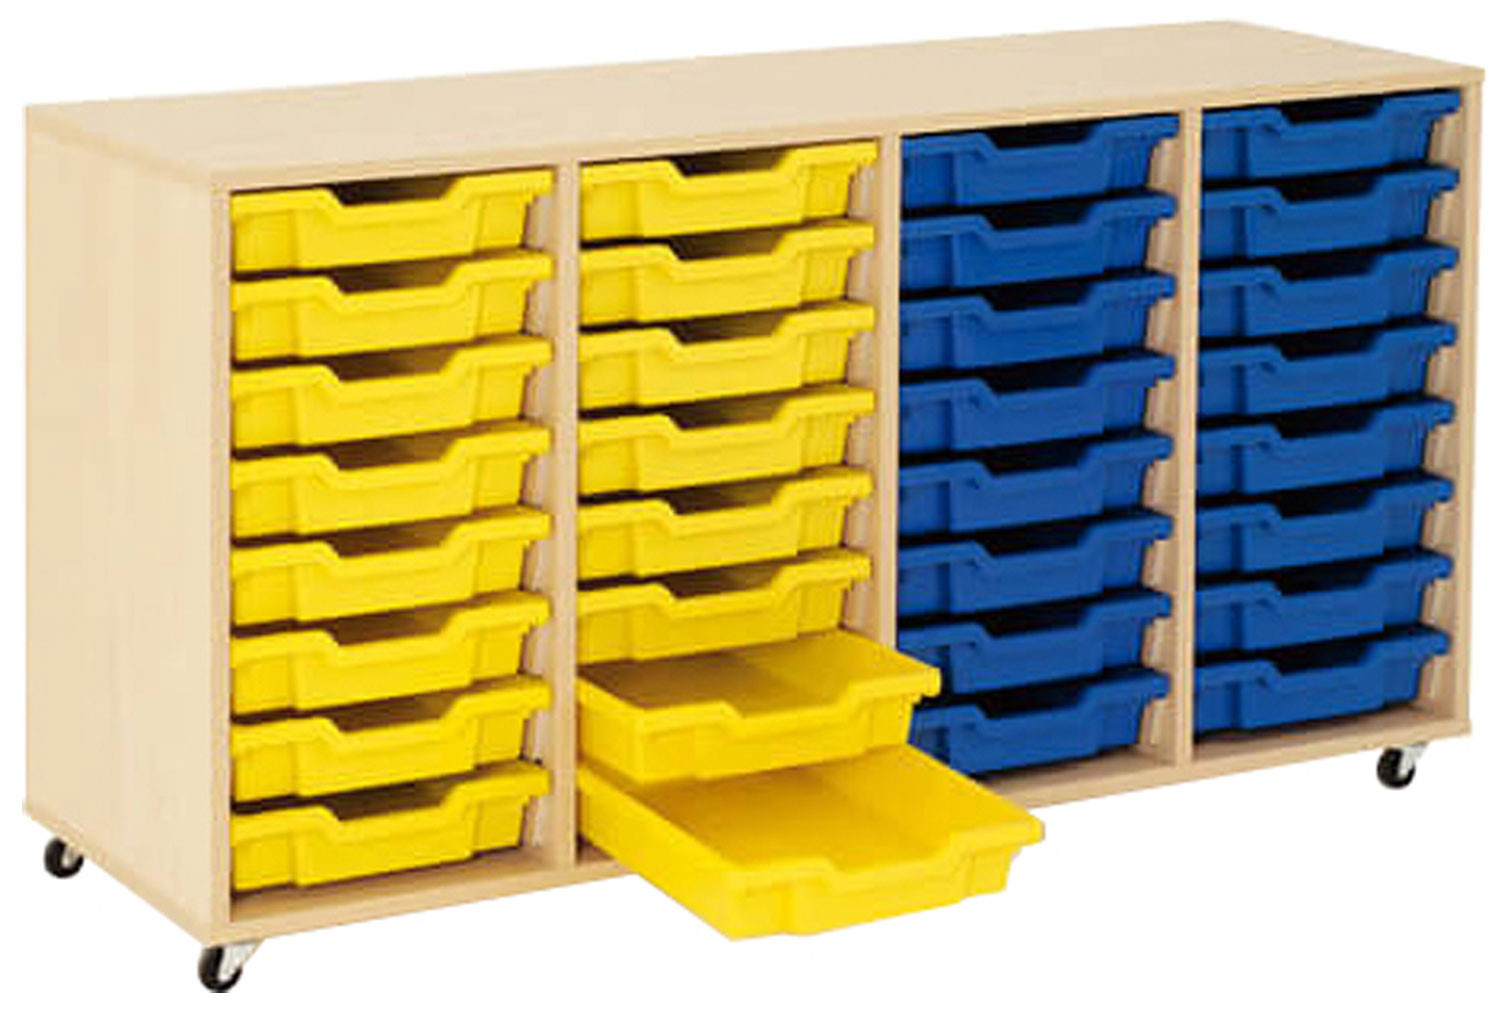 Mobile tray storage unit with 32 shallow Gratnells trays